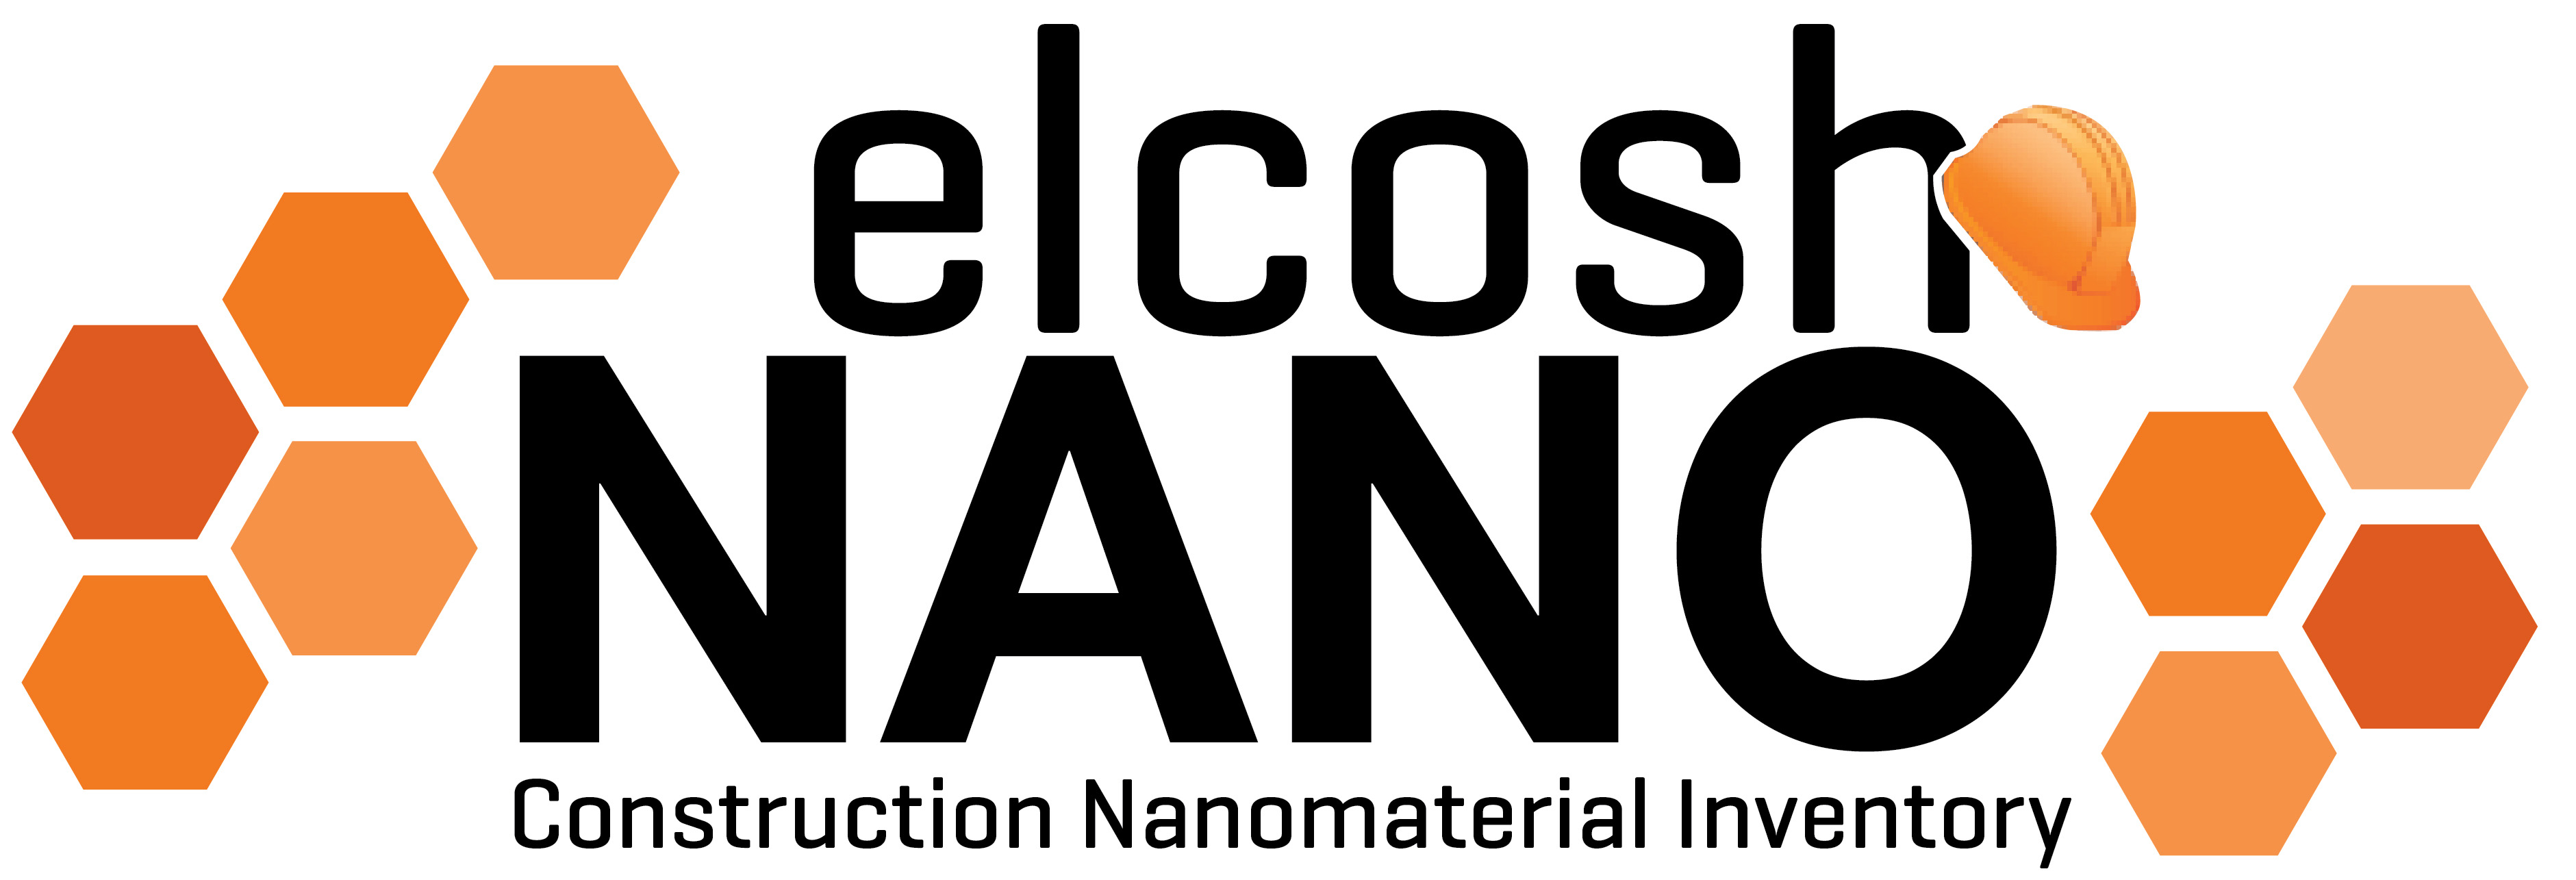 Construction Nanomaterial Inventory